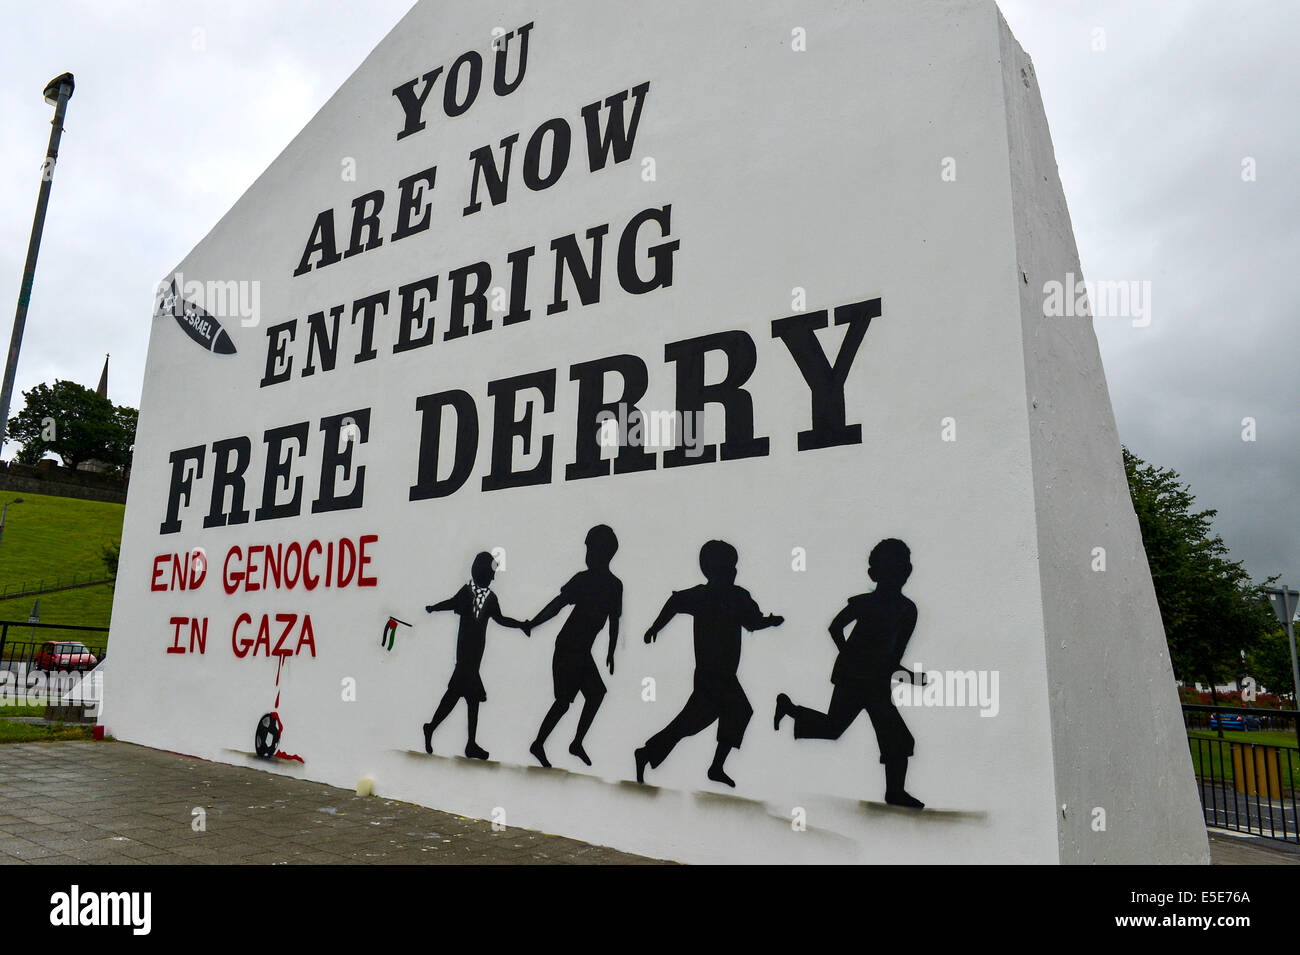 Derry, Londonderry, Northern Ireland - 29 July 2014 Pro-Palestinian Slogan painted on Free Derry Wall.  Pro-Palestinian - Stock Image